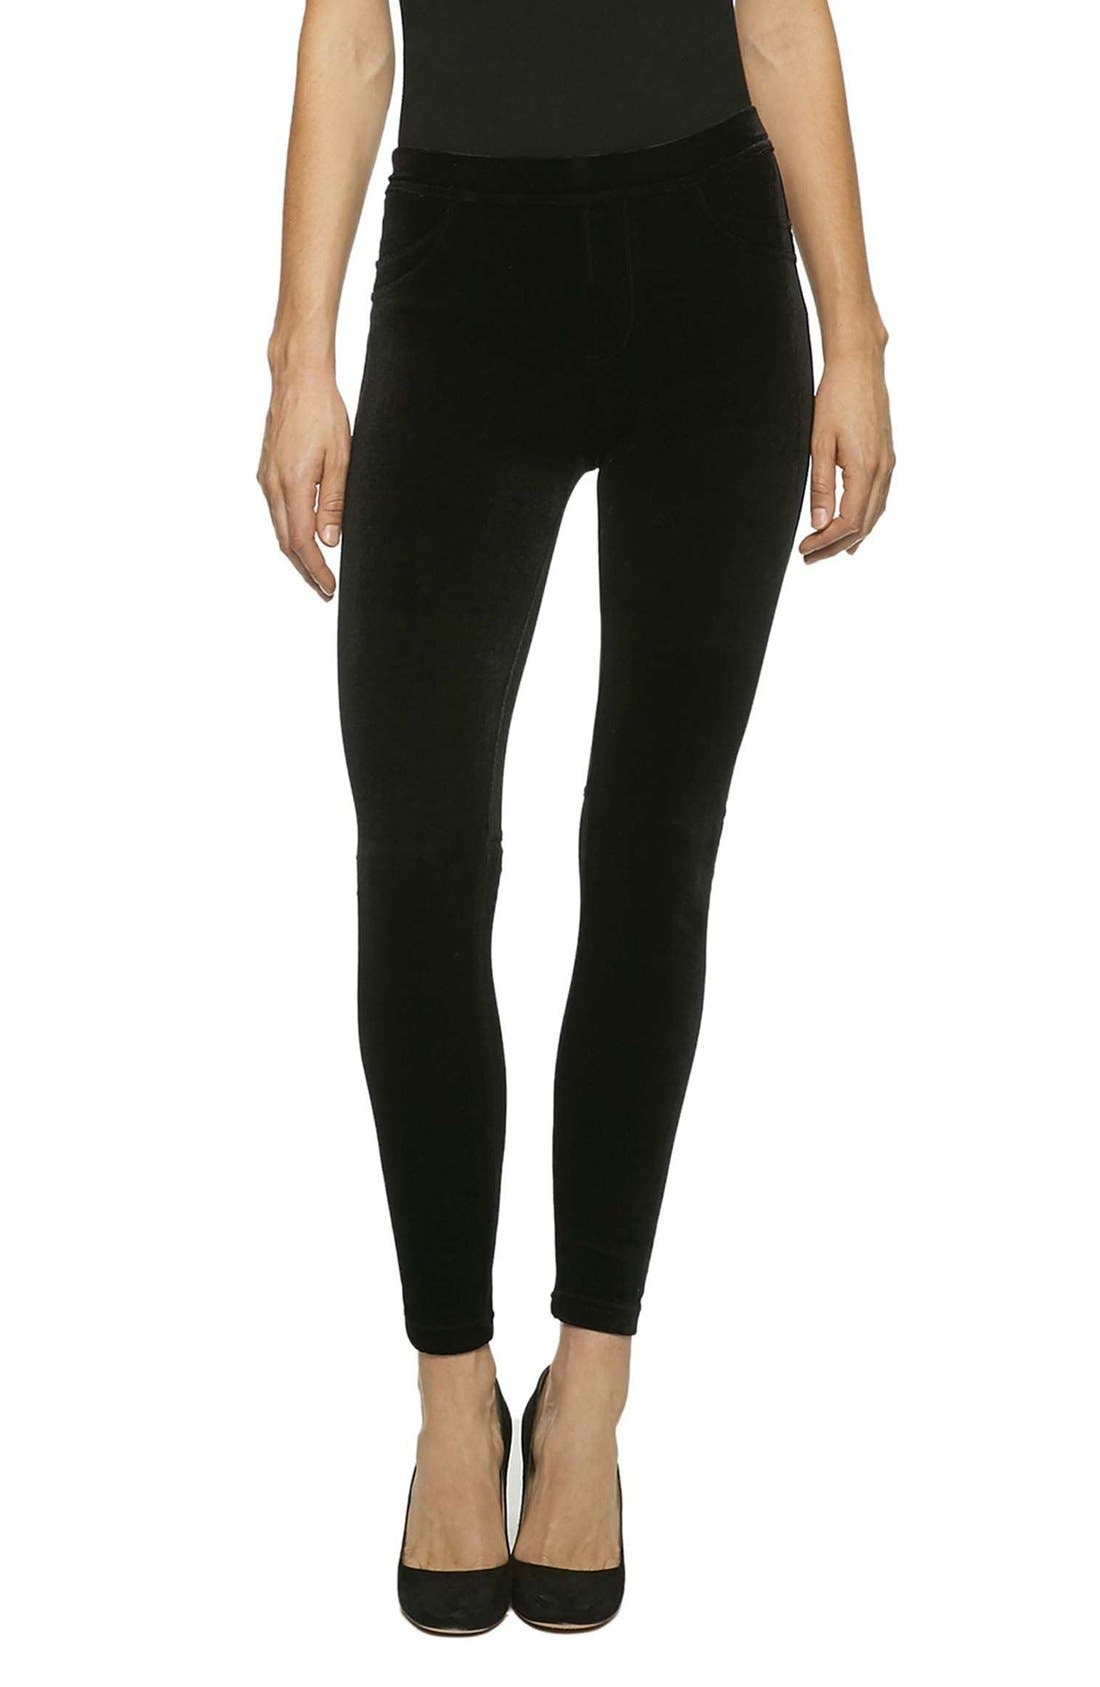 Grease Velvet Leggings,                         Main,                         color, Solid Black Velvet